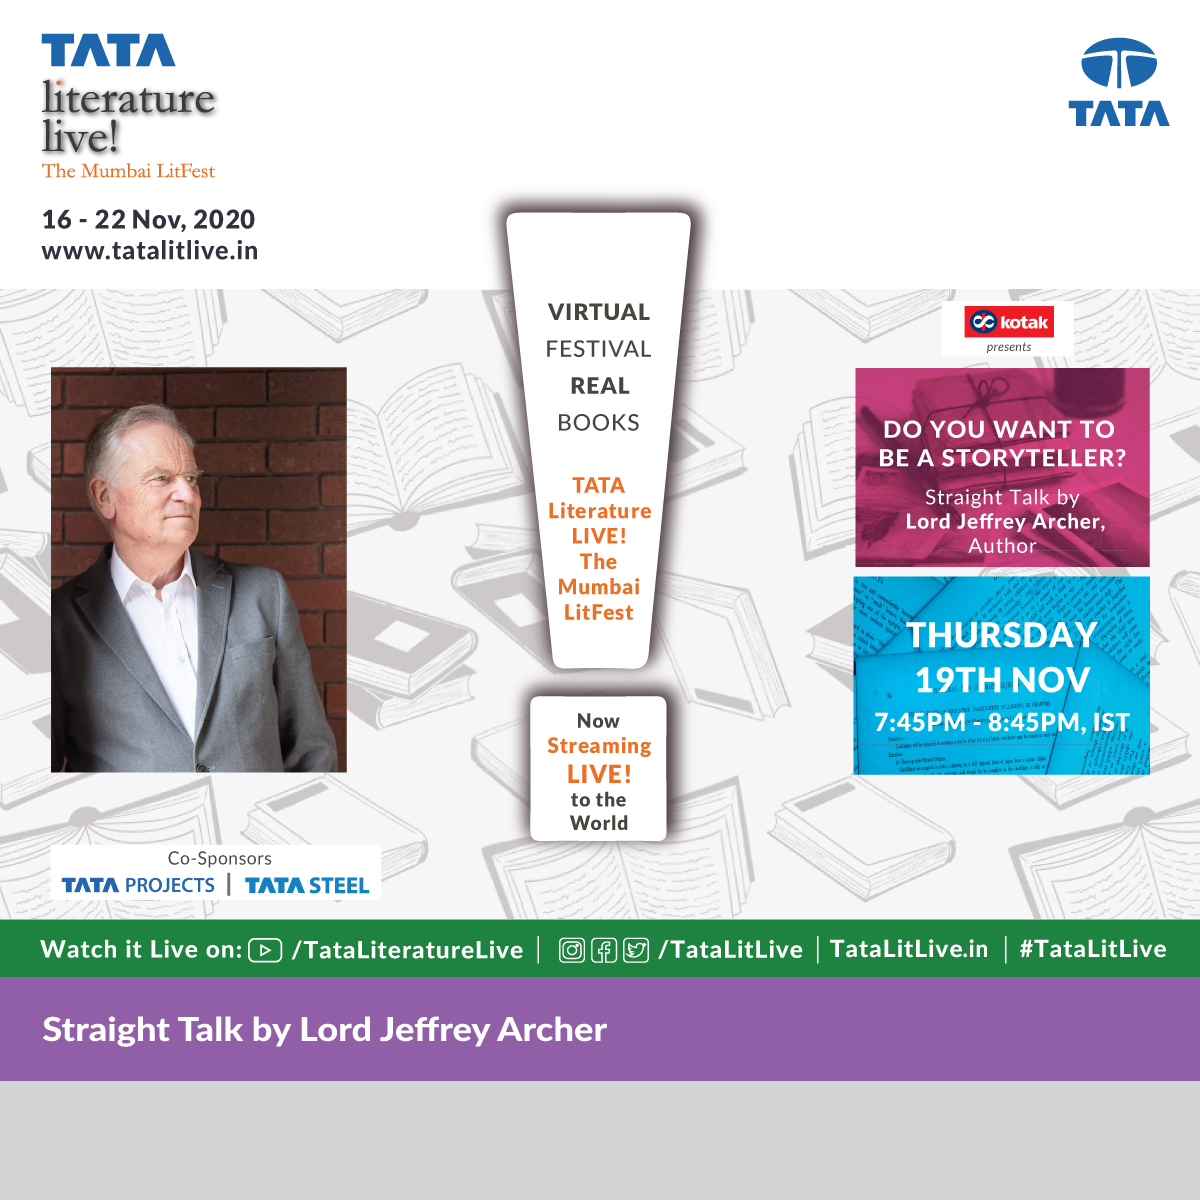 Looking forward to speaking at #TatalitLive2020 tomorrow, 2.30pm UK time, 7.45pm IST. tatalitlive.in